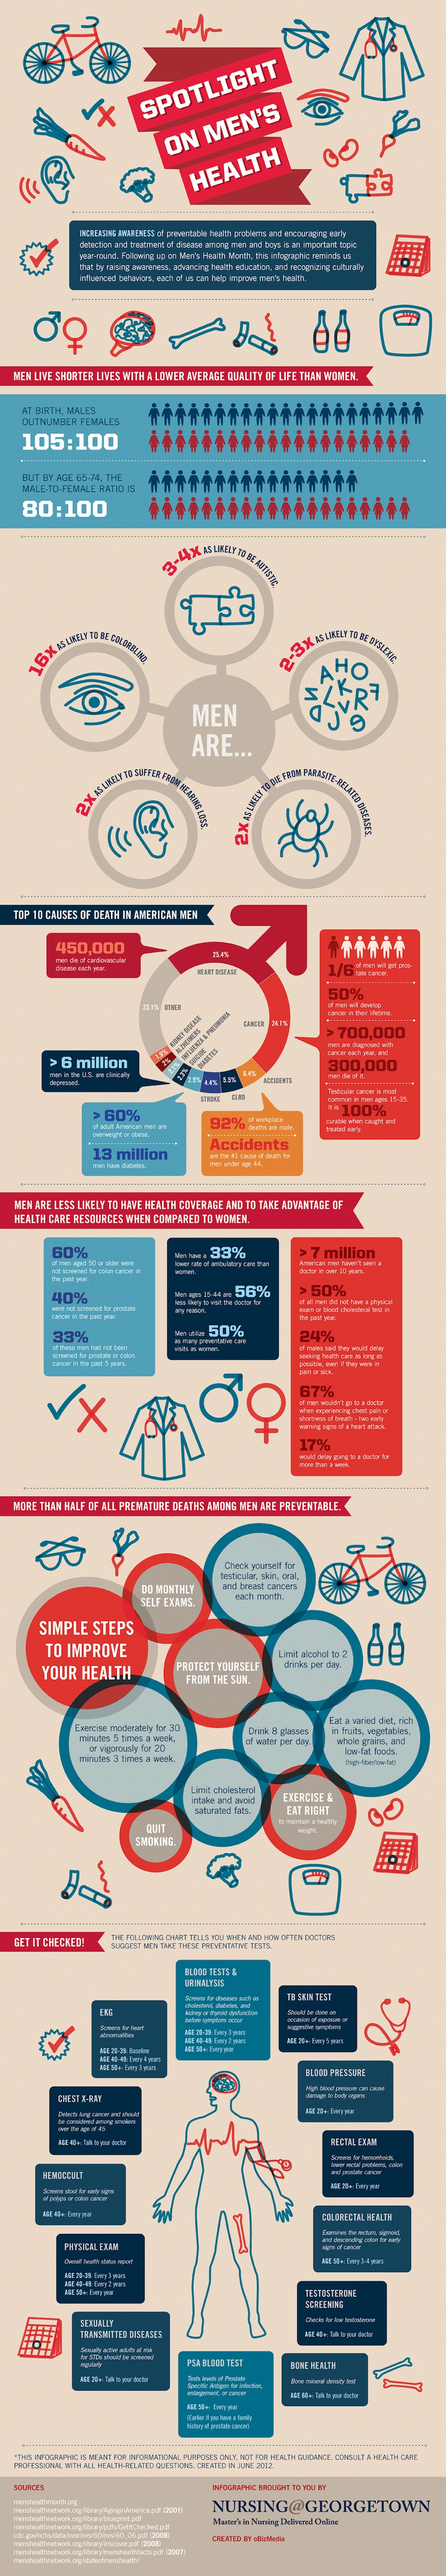 Spotlight on Men's Health (Graphic by Georgetown University, Online Masters in Nursing Program, Erica Moss, Community Manager)